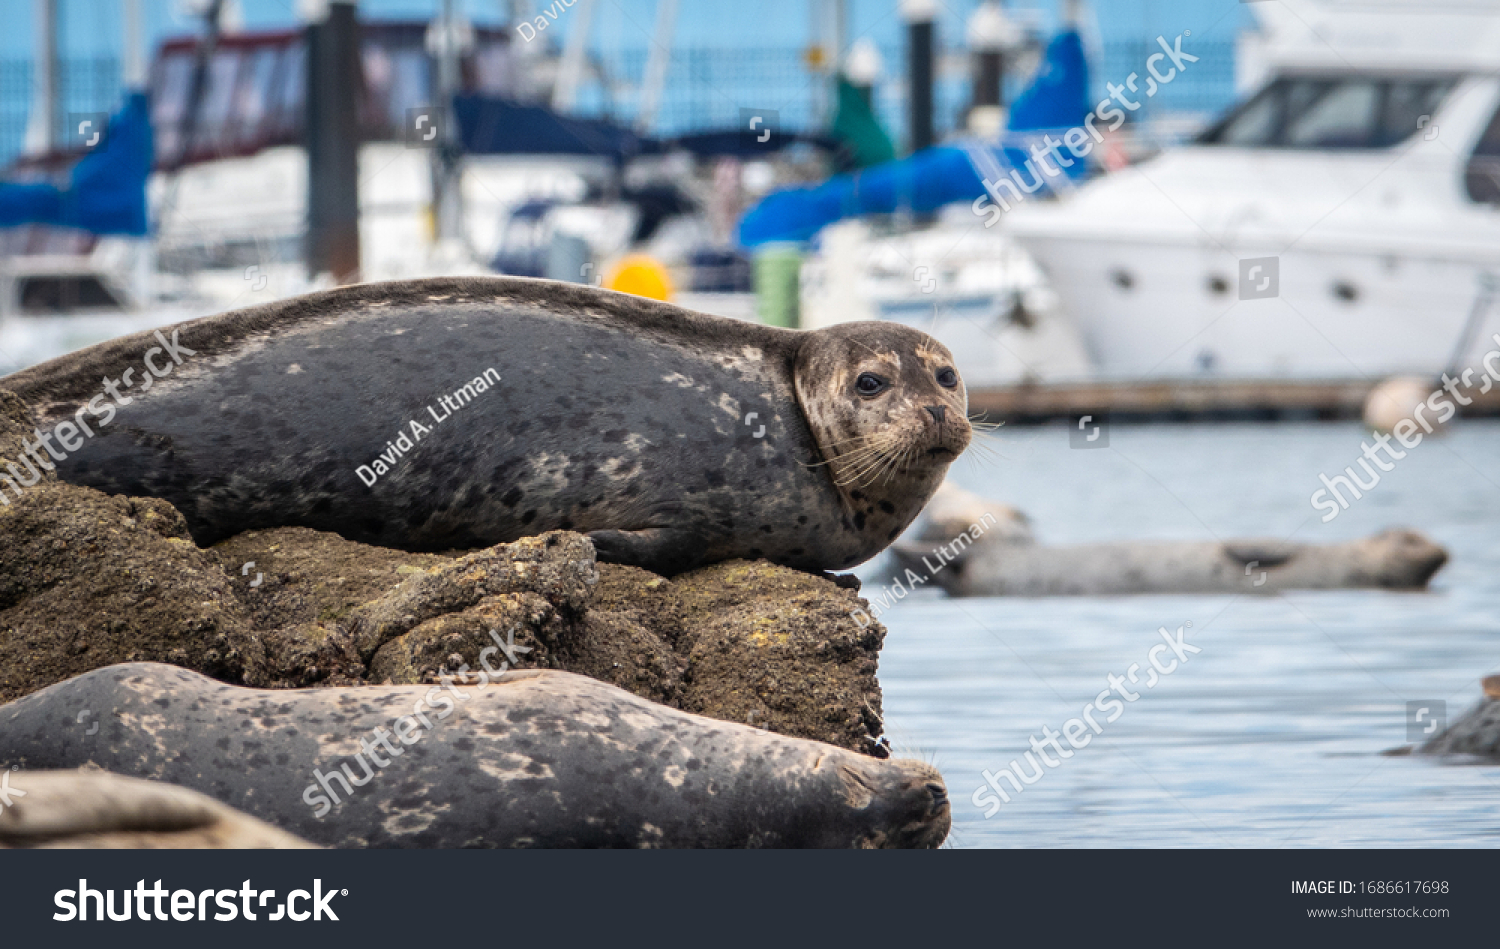 stock-photo-pacific-harbor-seals-phoca-vitulina-rest-on-exposed-rocks-at-low-tide-at-the-monterey-marina-1686617698.jpg